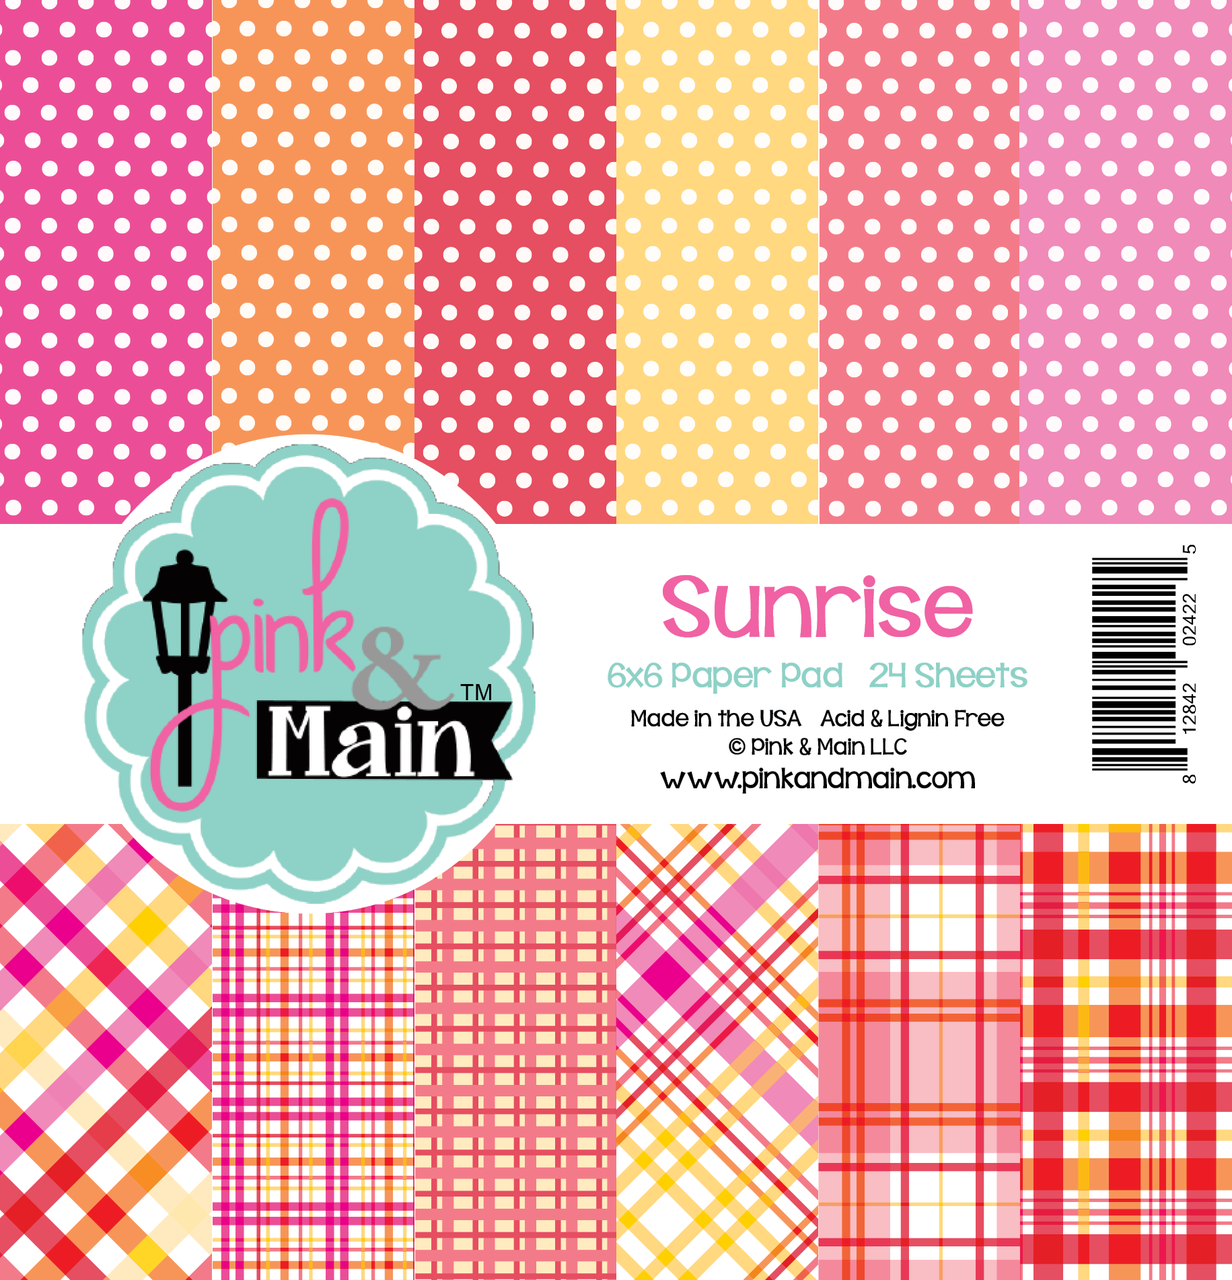 *NEW* - Pink and Main - Sunrise 6x6 Paper Pad